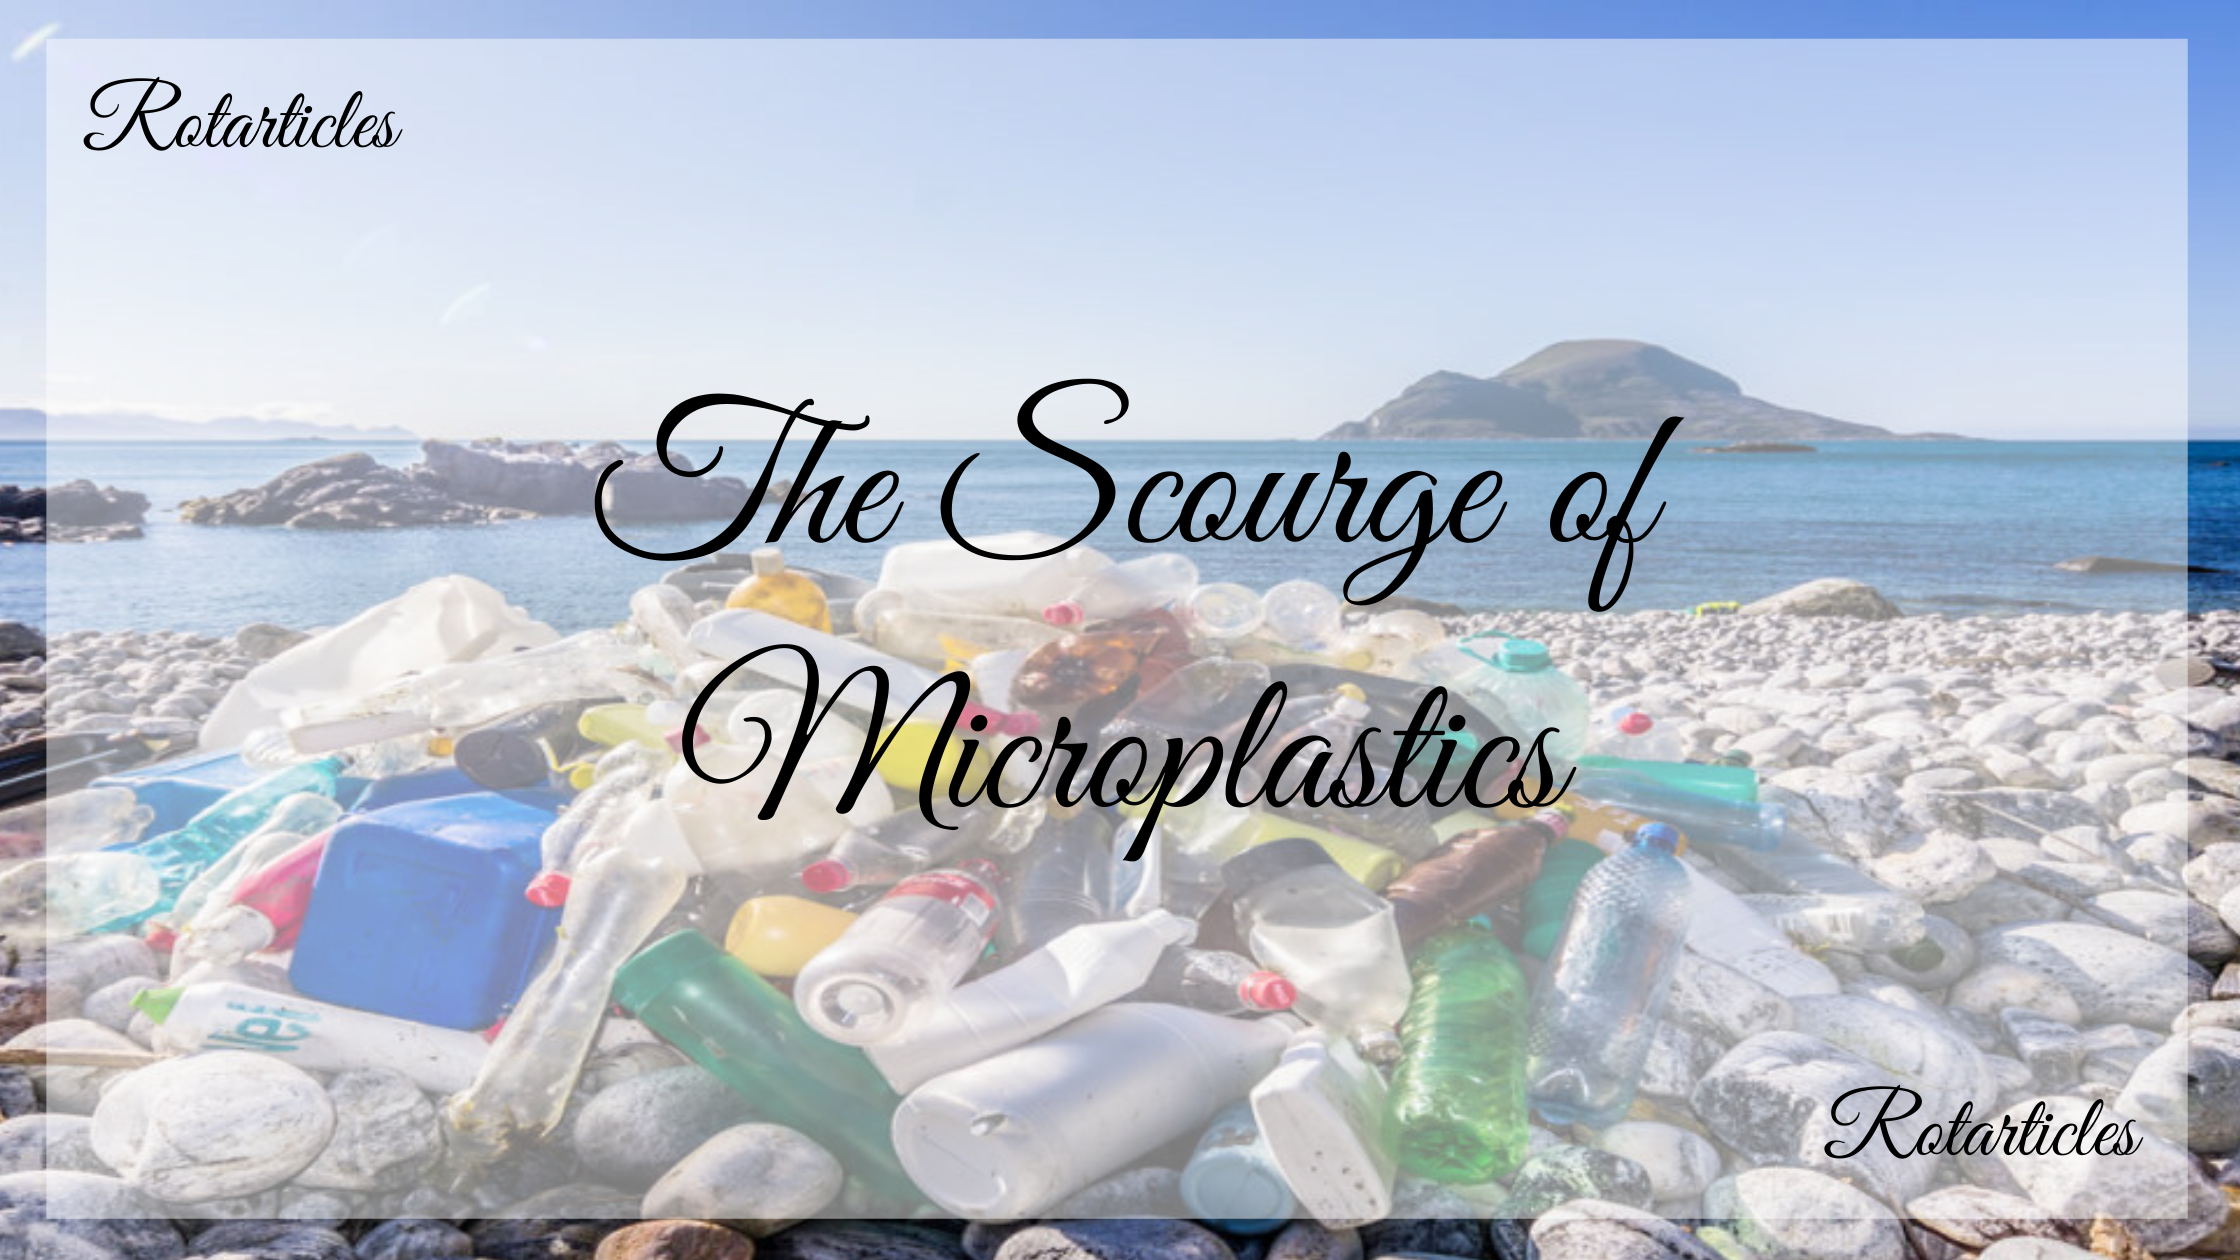 The Scourge of Microplastics